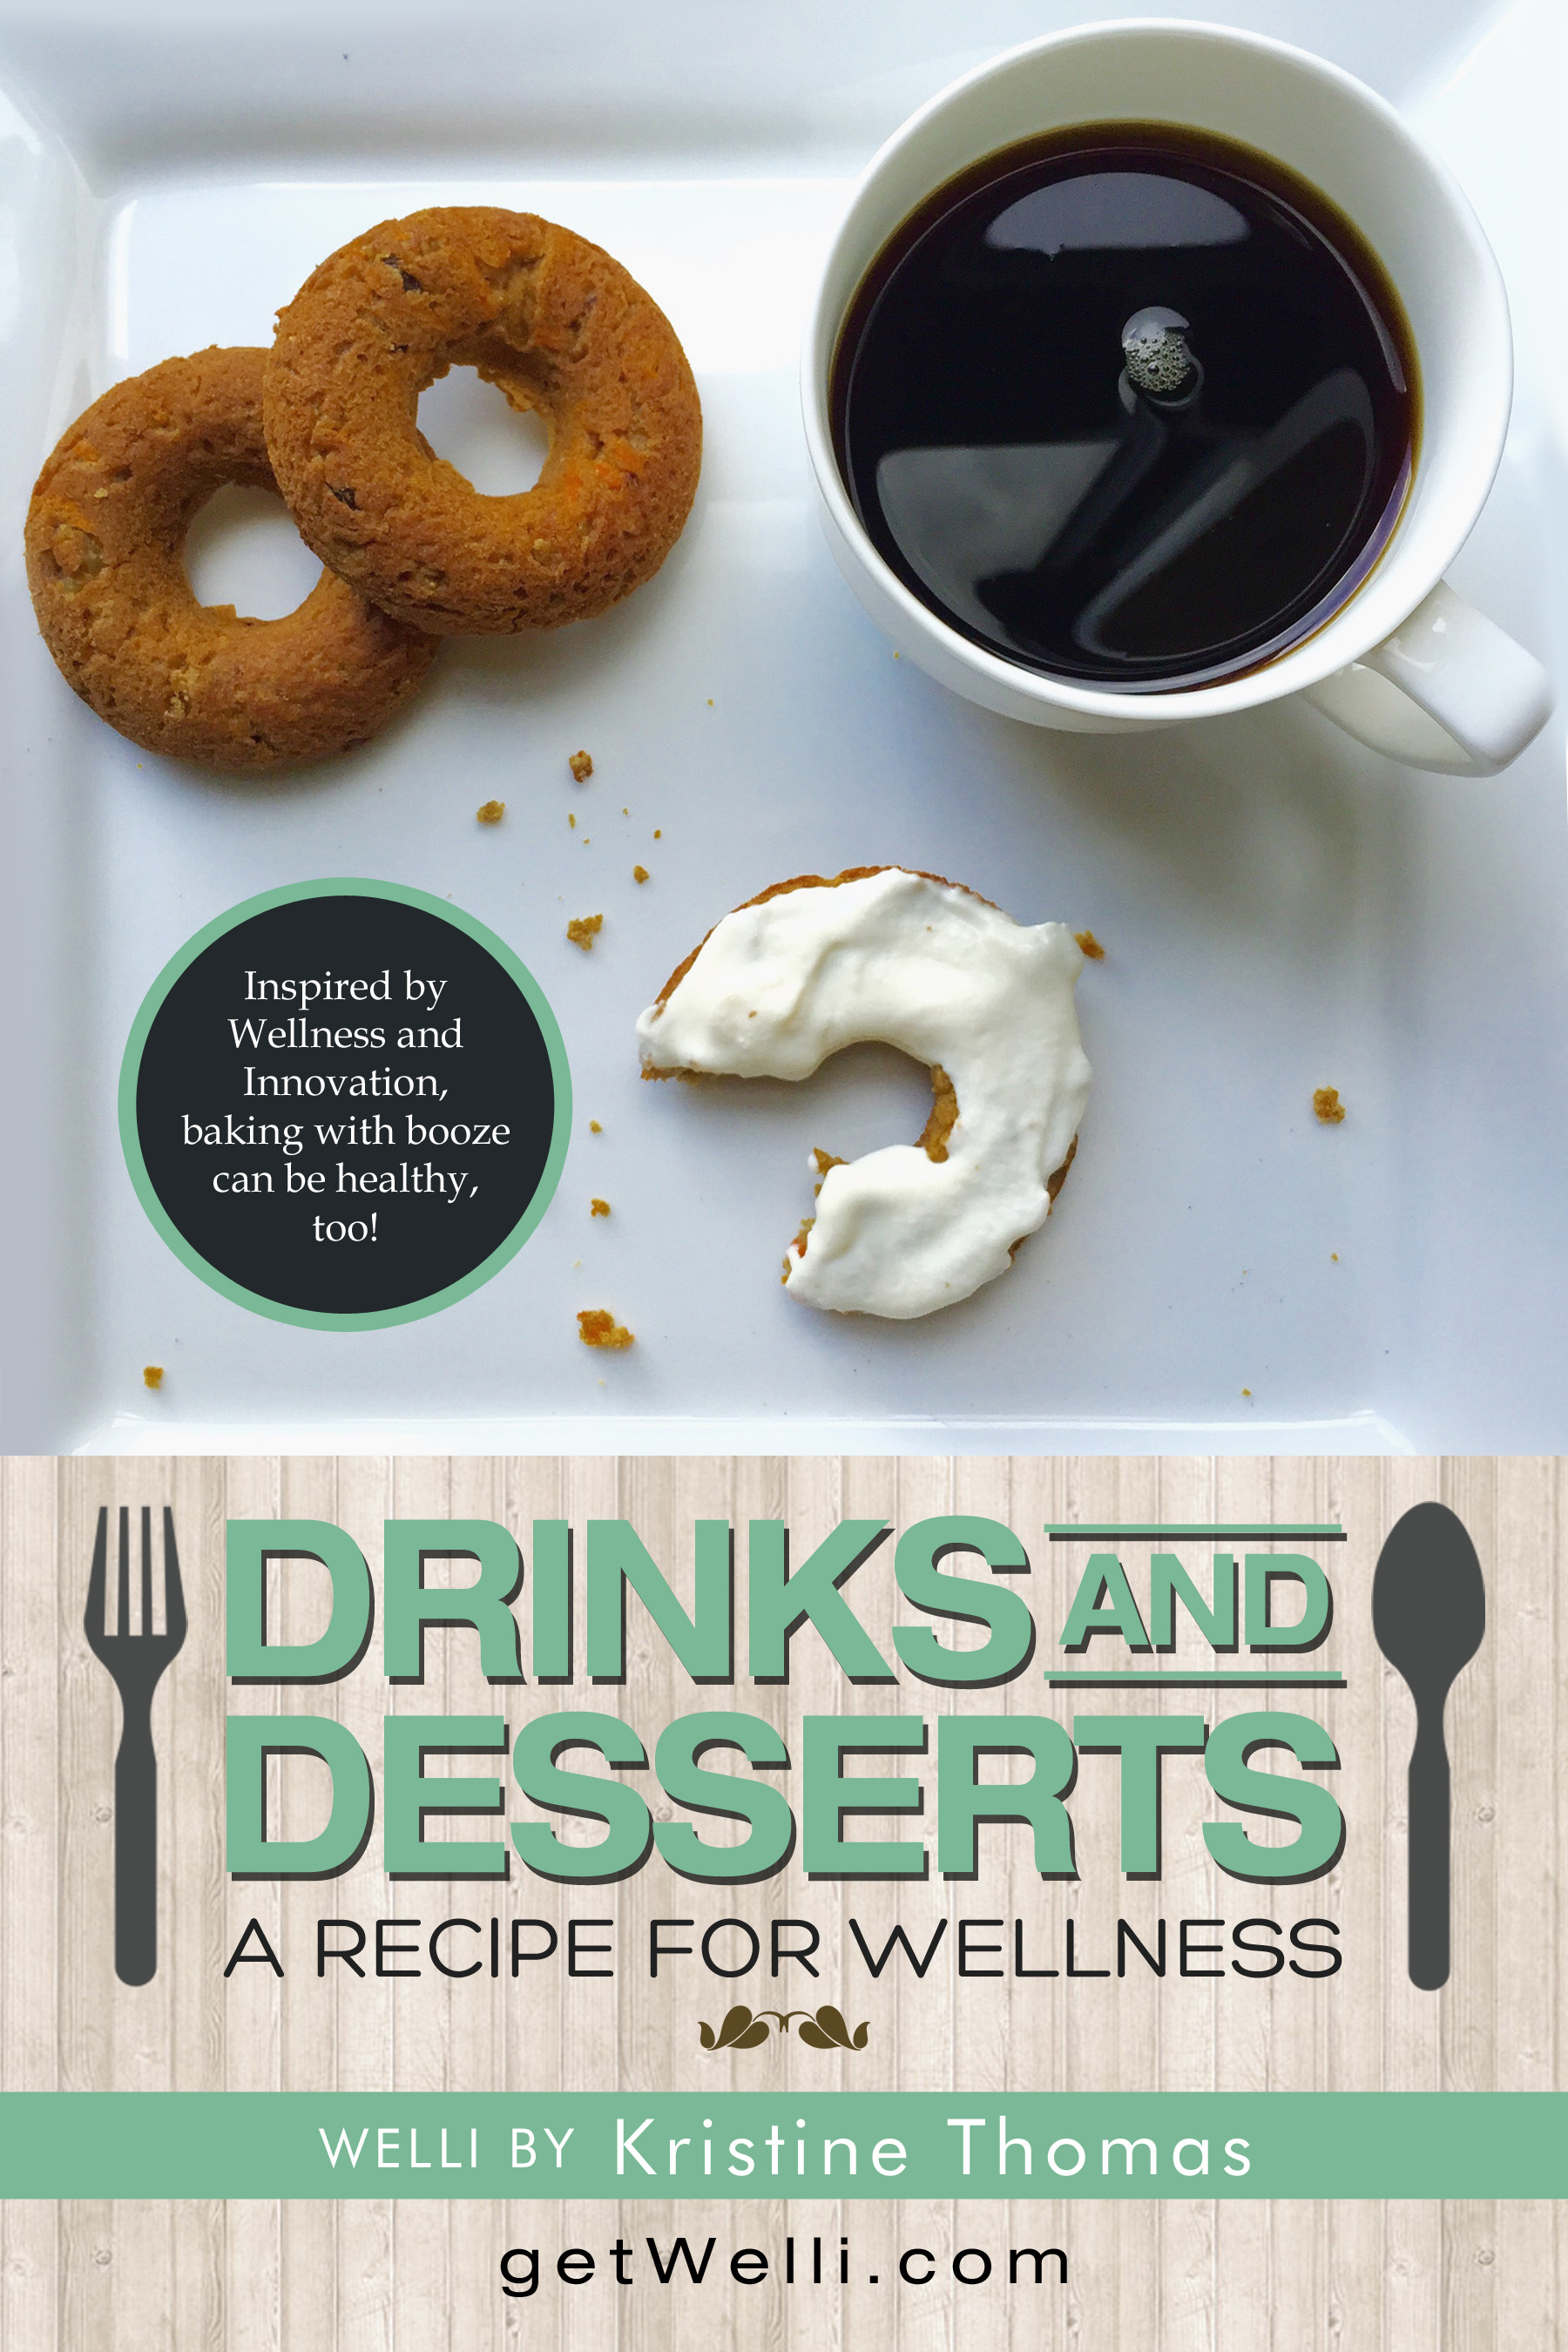 Drinks & Desserts - A Recipe for Wellness Ebook of Recipes